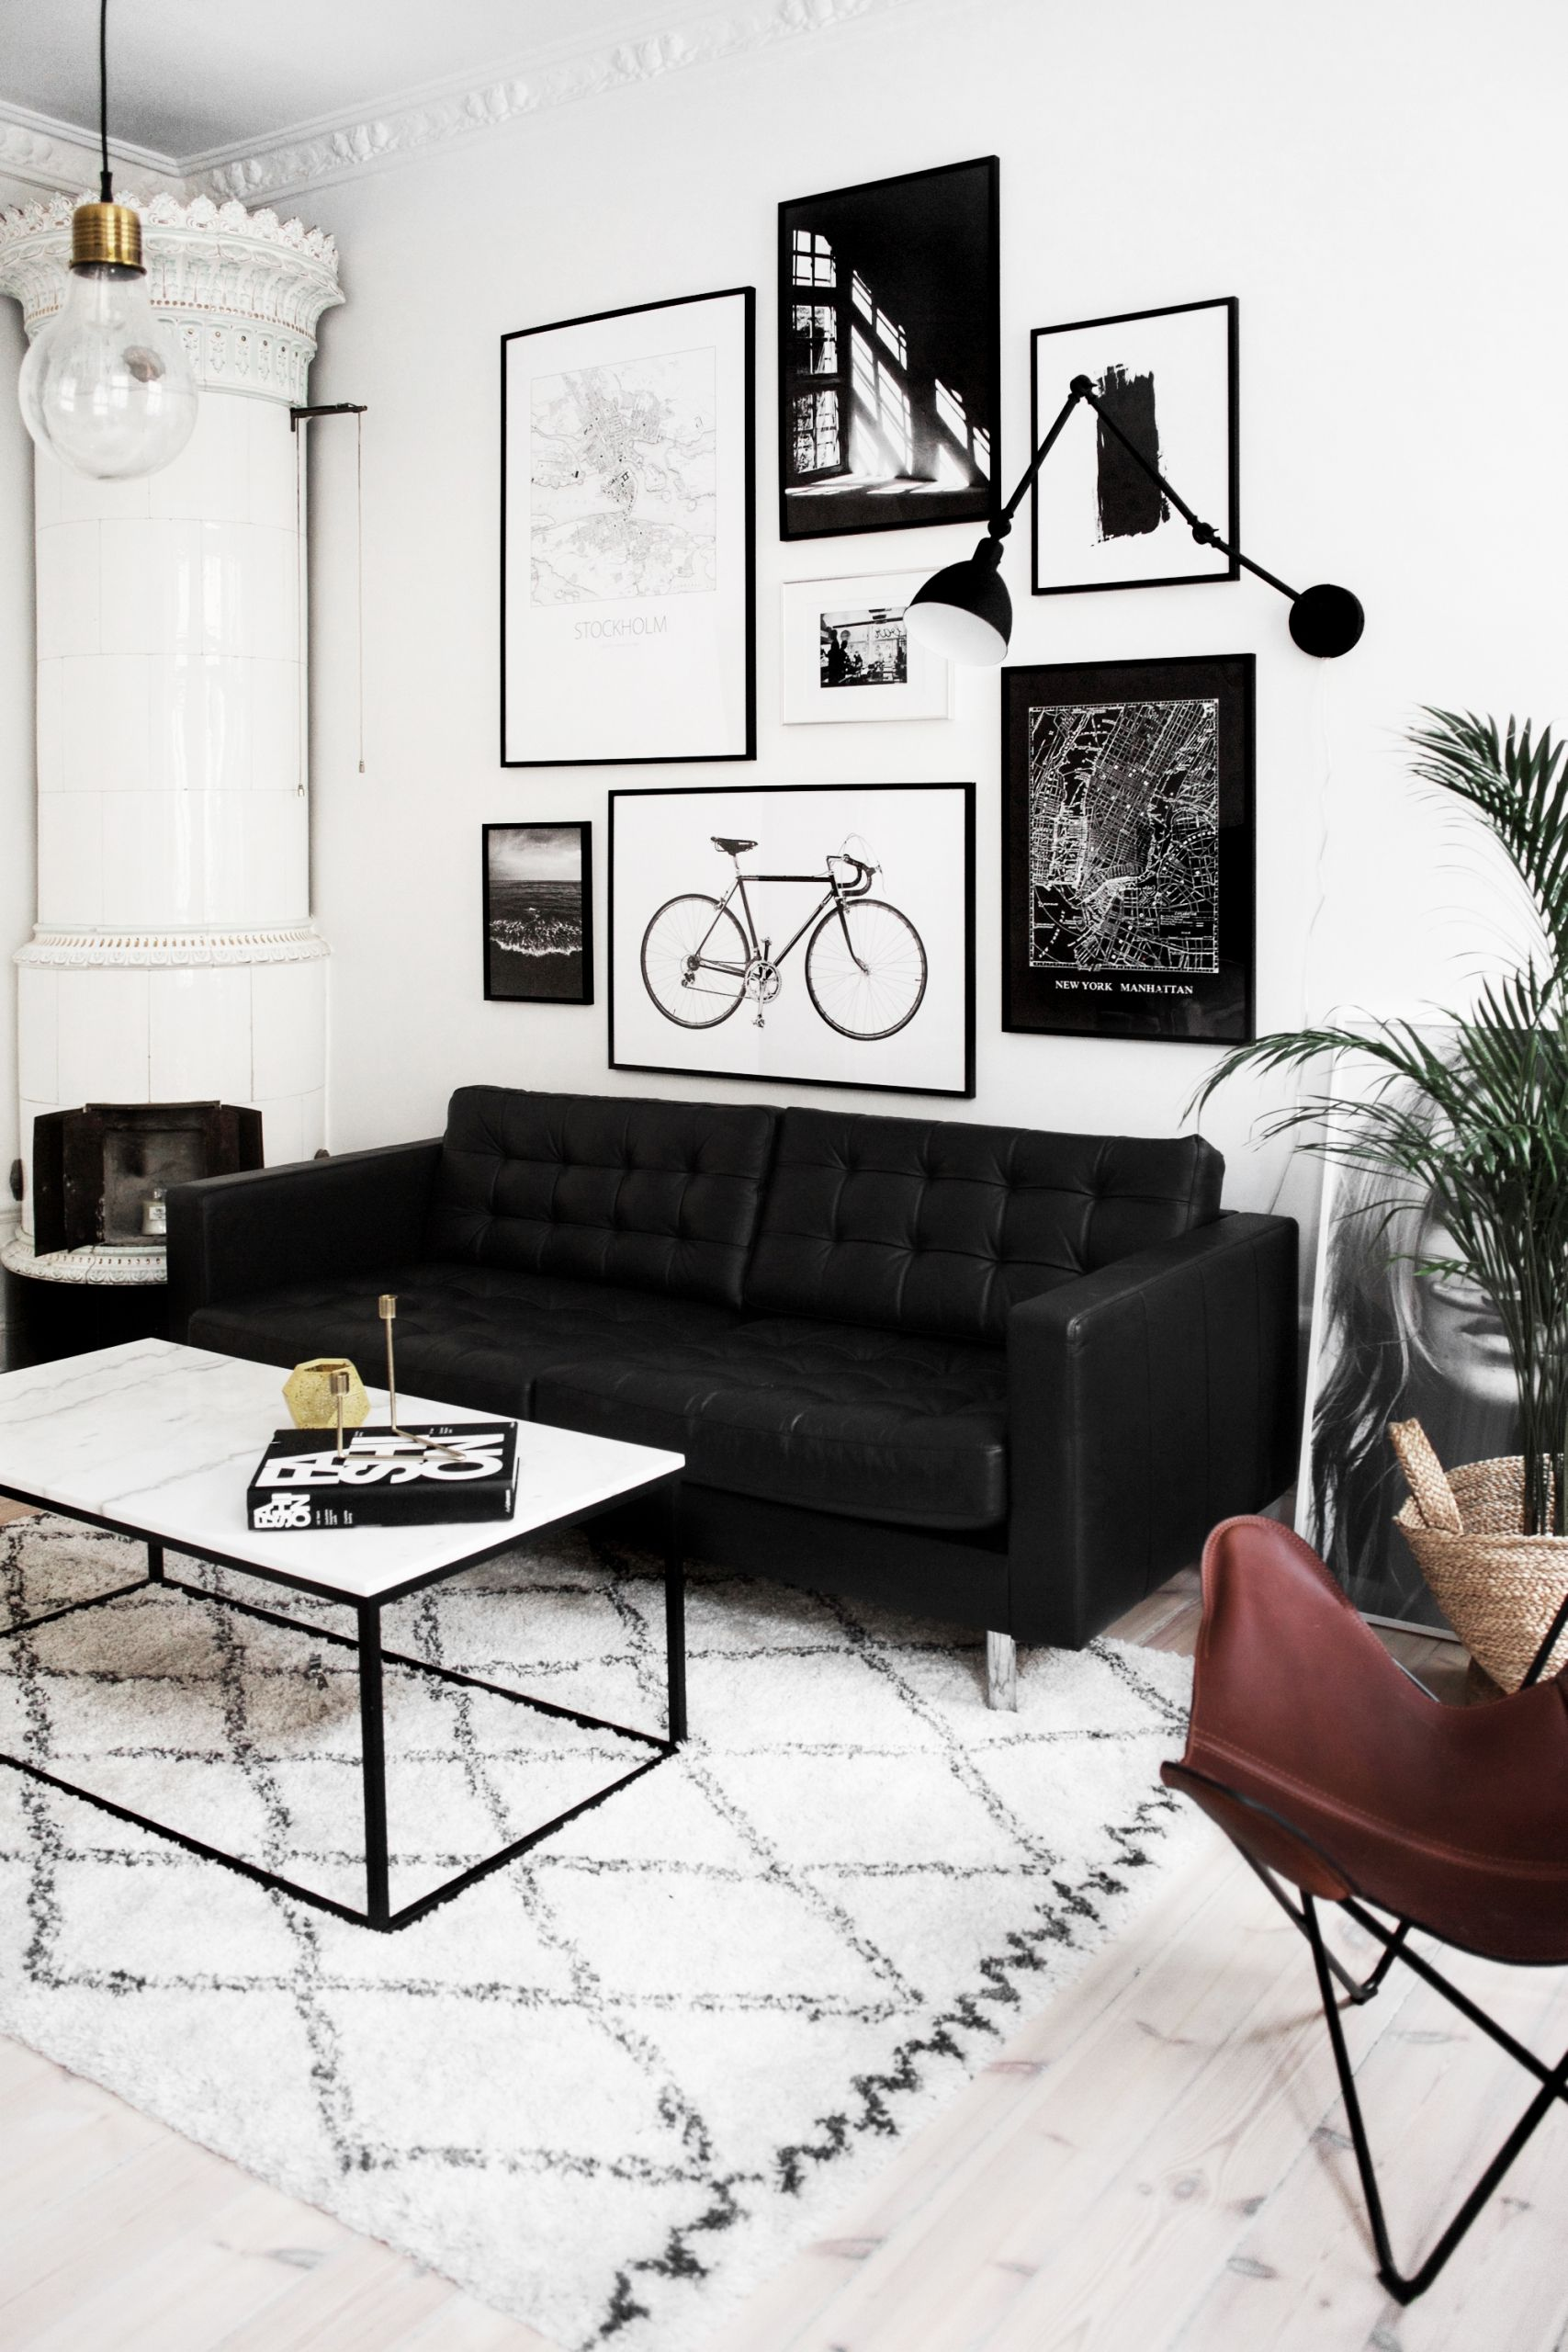 Beau Livingroom2 Mais Gallery Wall Living Room Couch, Black Sofa ...